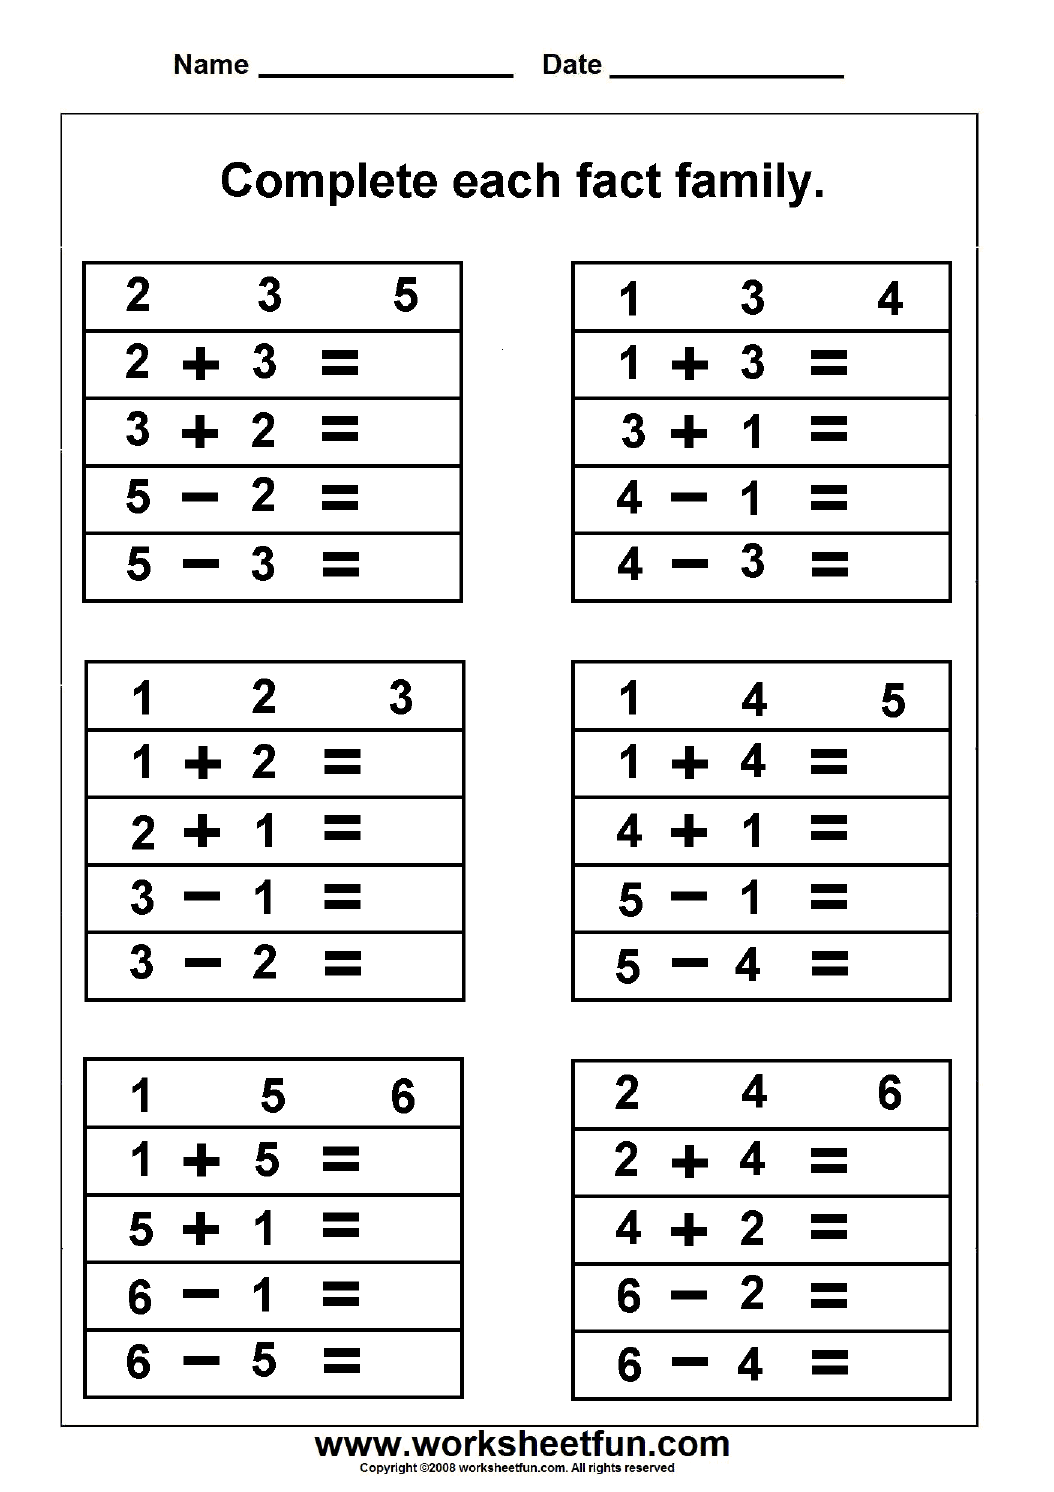 Numbers Fact Family FREE Printable Worksheets Worksheetfun – Fact Family Worksheets Multiplication and Division